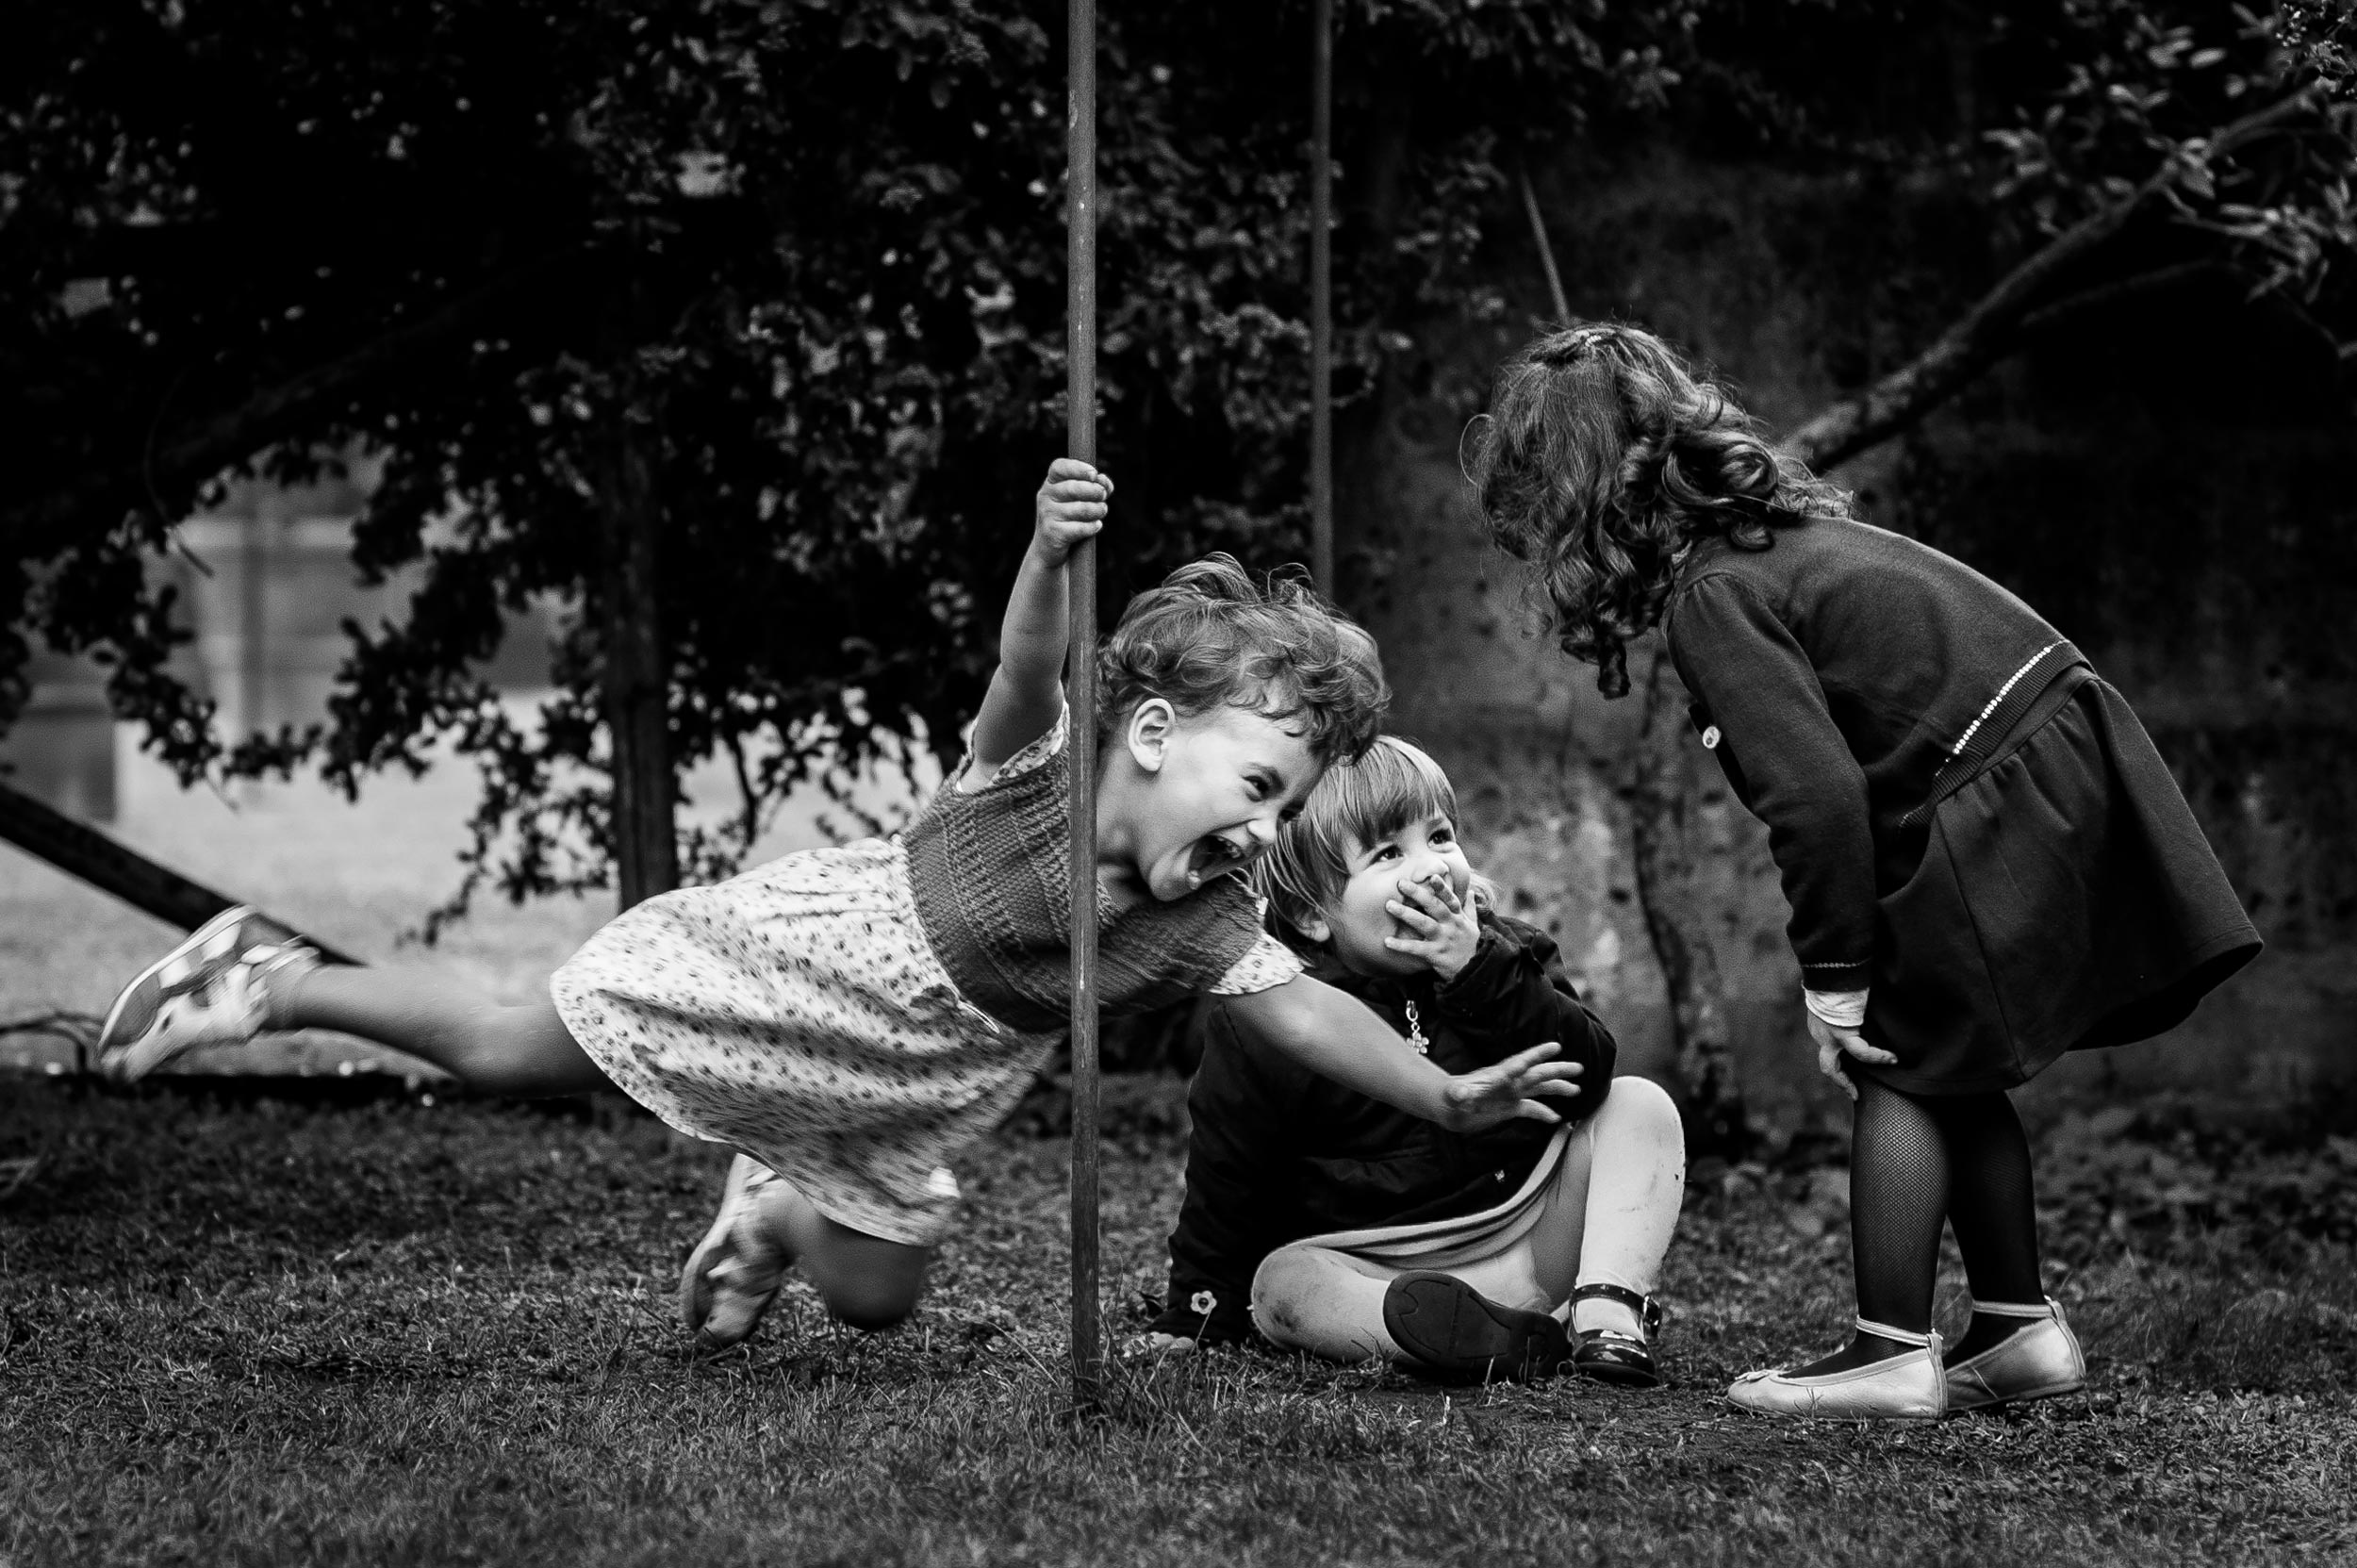 girl-playing-with-a-pole-among-children-black-and-white-wedding-photography.jpg